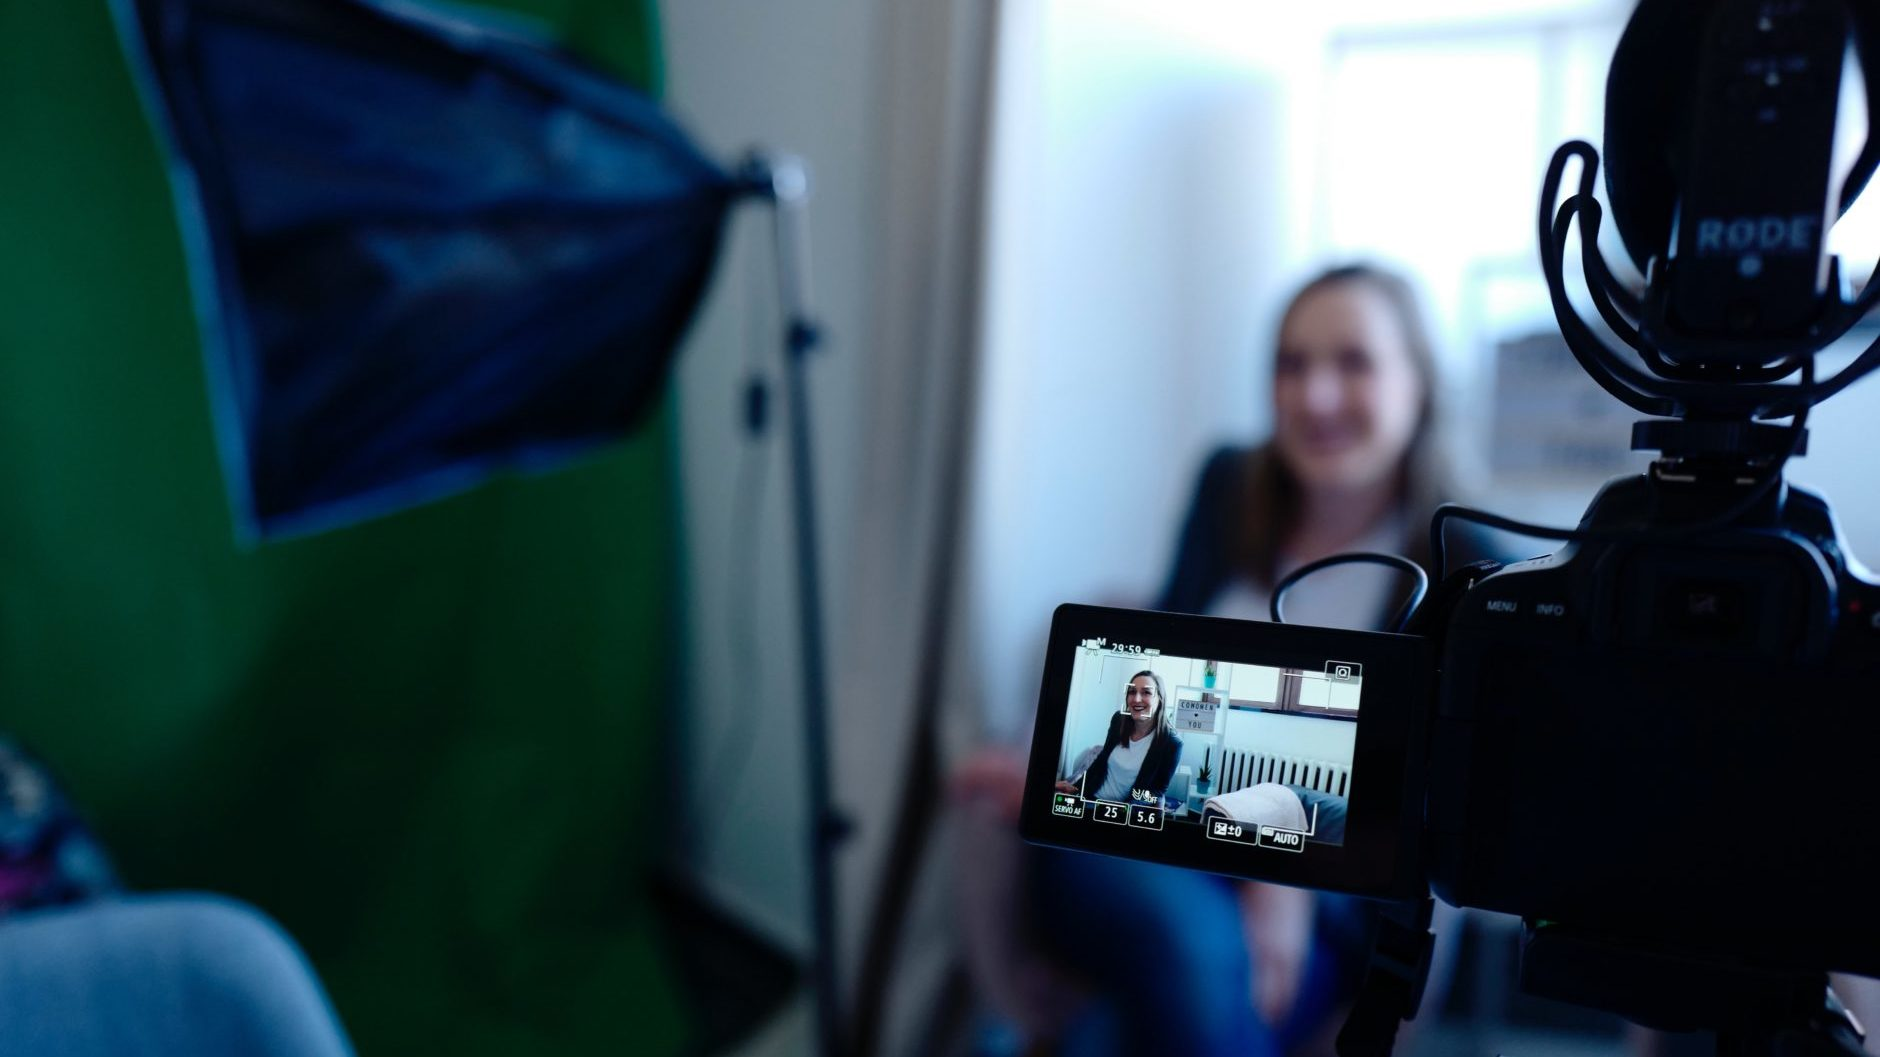 A woman is being recorded for a user interview